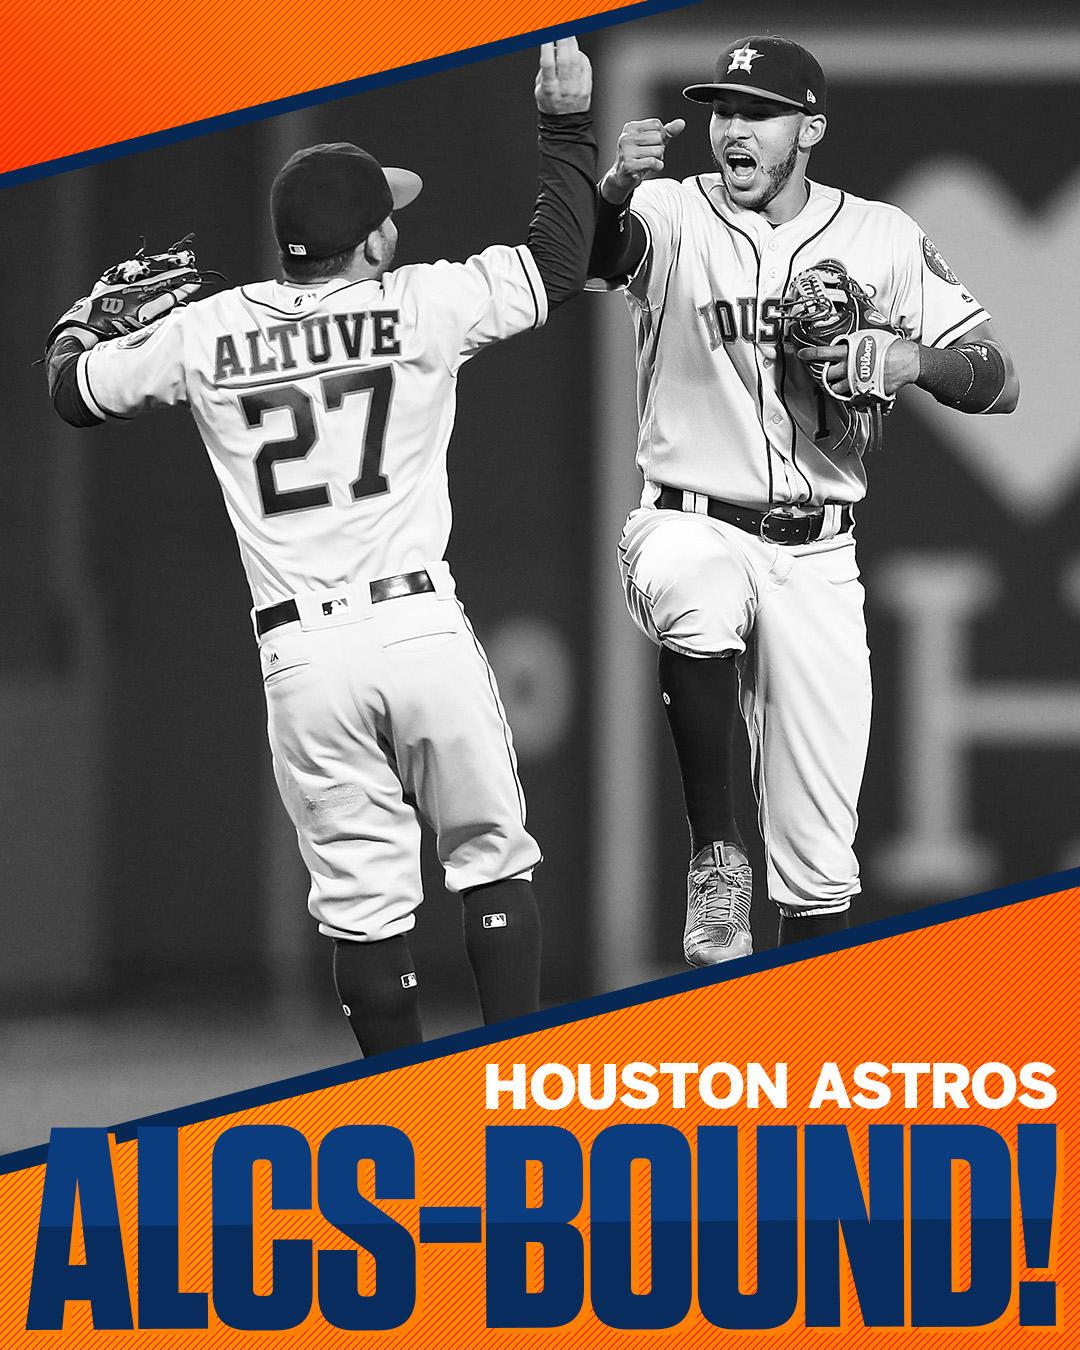 Houston is moving on!  The Astros will play in their first LCS since 2005. https://t.co/ZOoSekwxnS